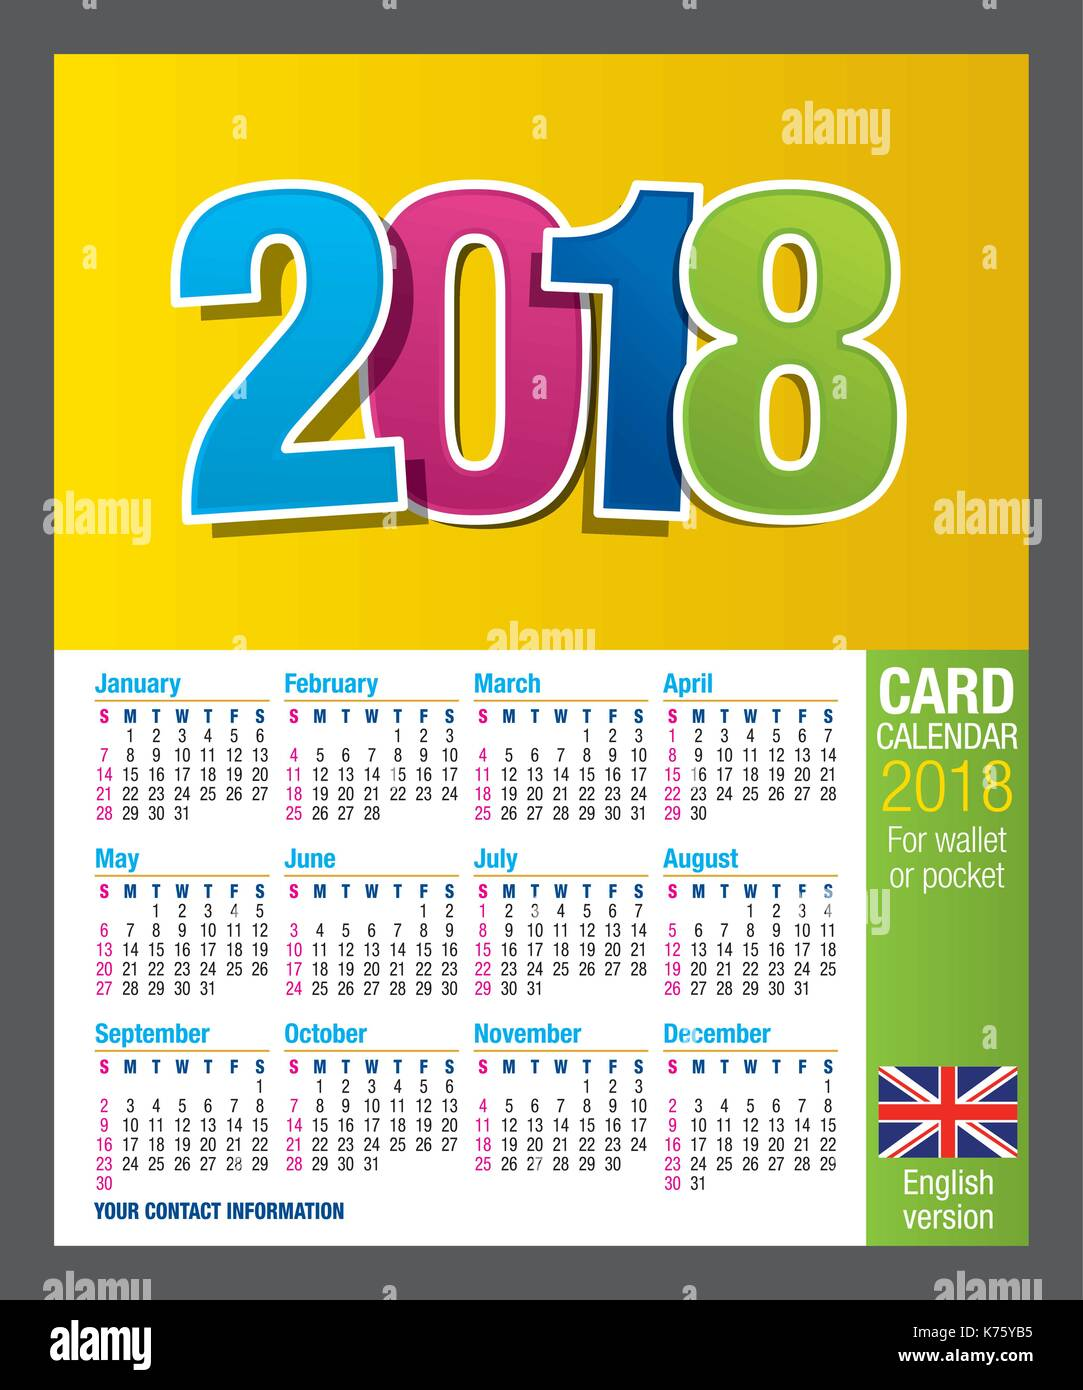 Useful Two Sided Card Calendar 2018 For Wallet Or Pocket In Full